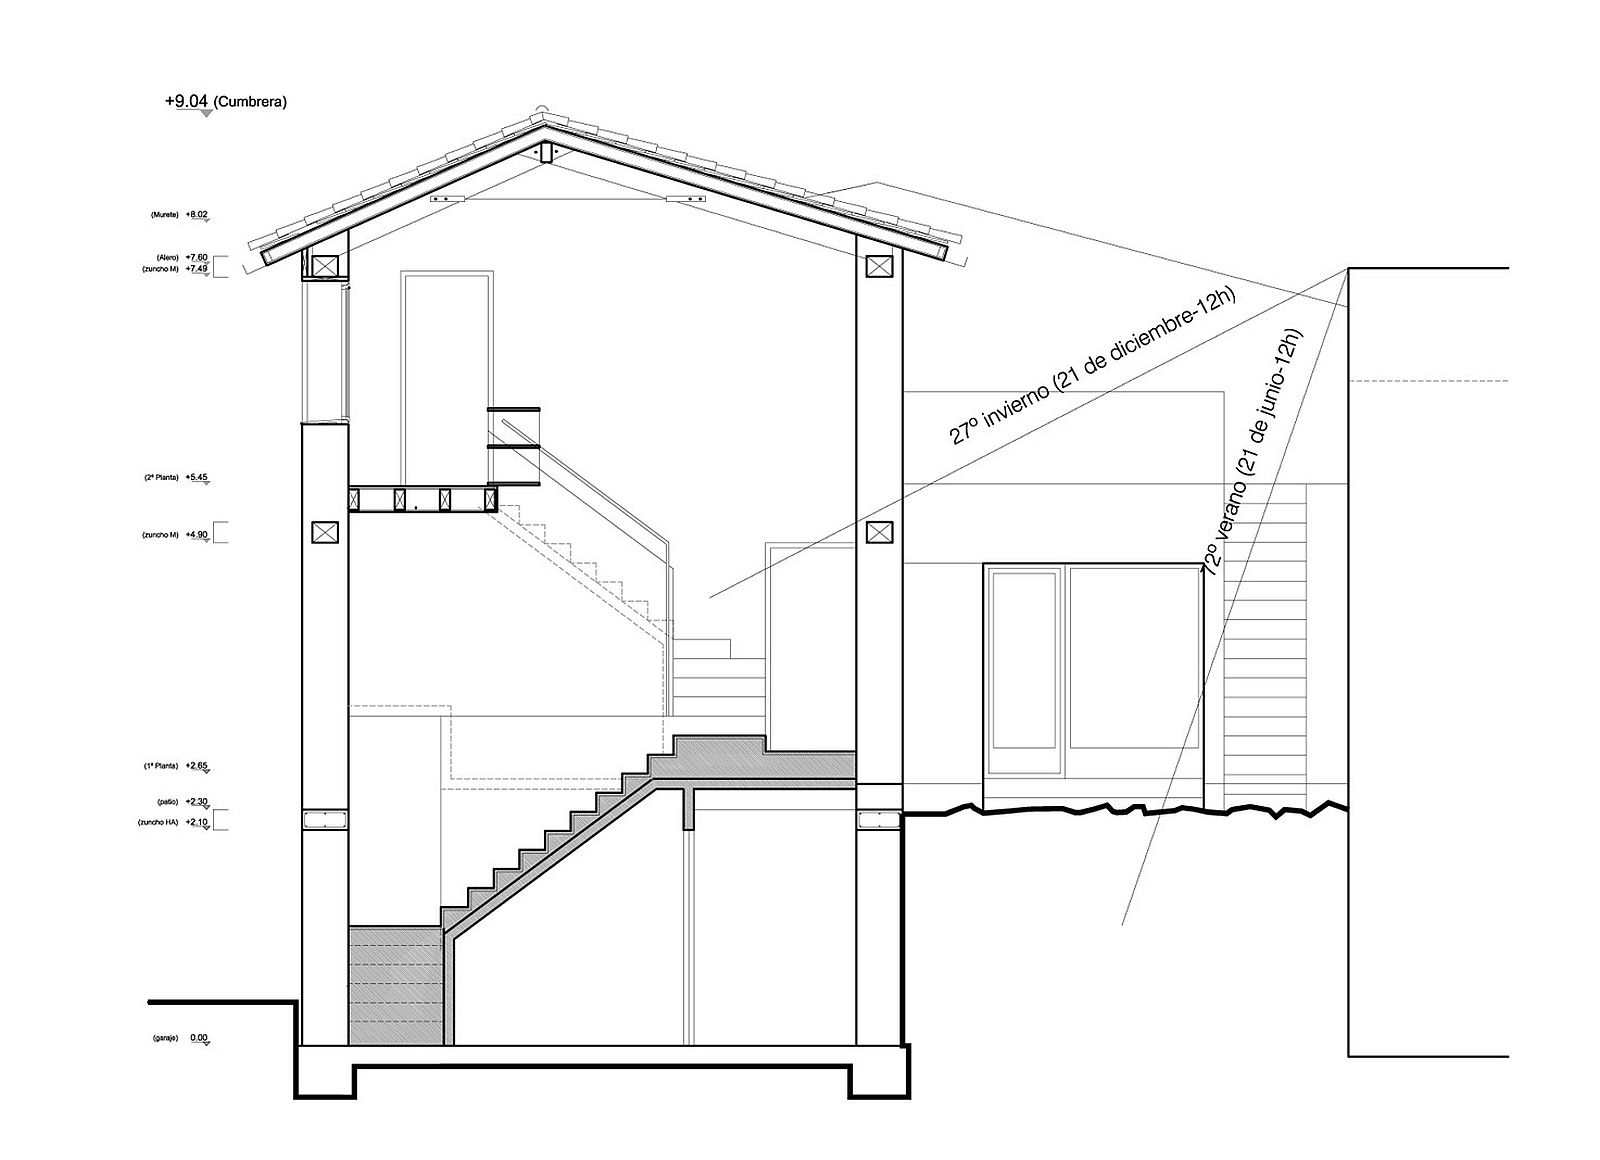 Passive solar design of the home makes it an efficient and sustainable structure